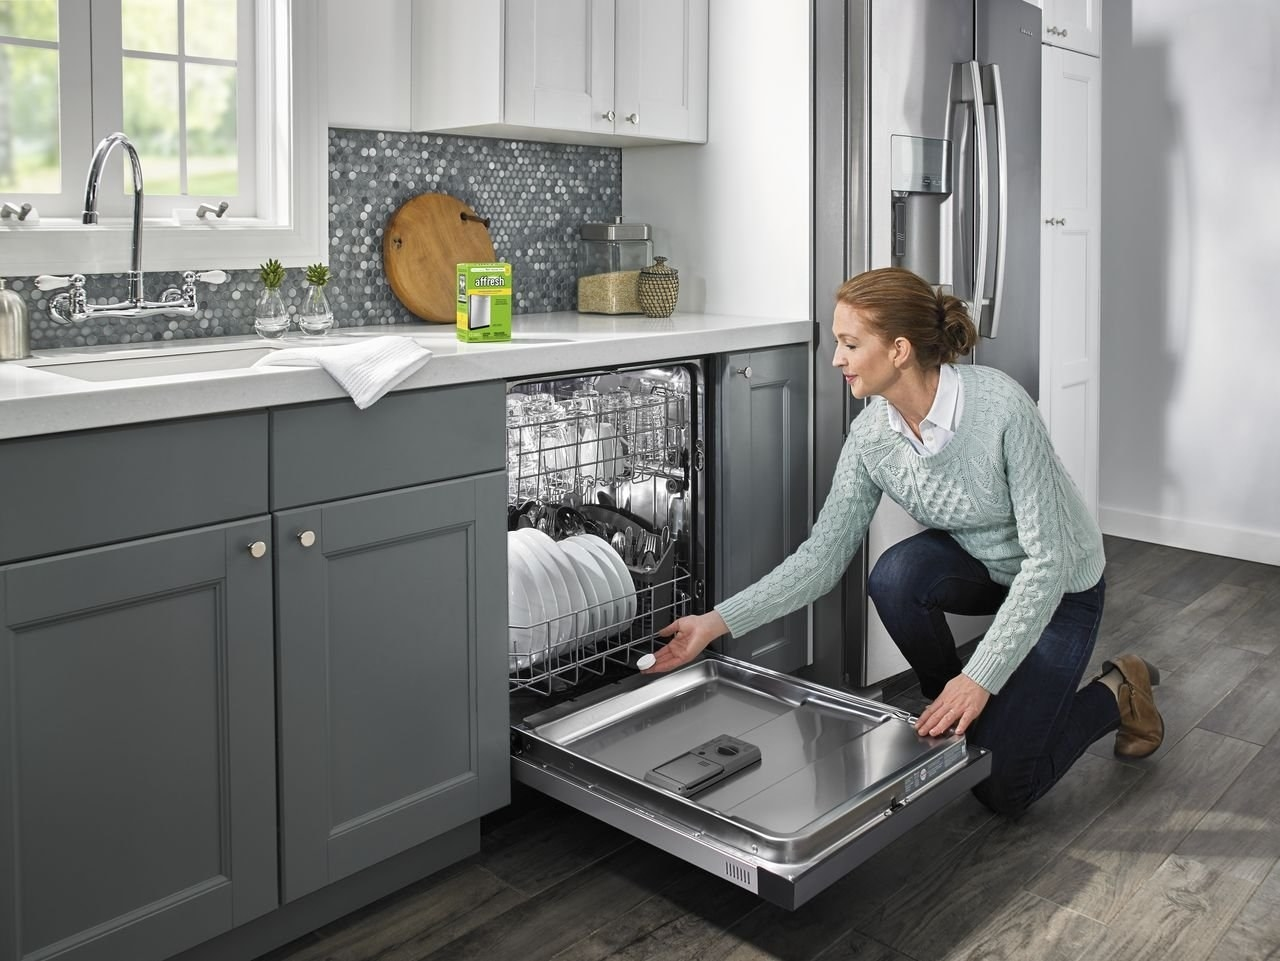 A woman places an Affresh dishwasher cleaning tab into a full dishwasher